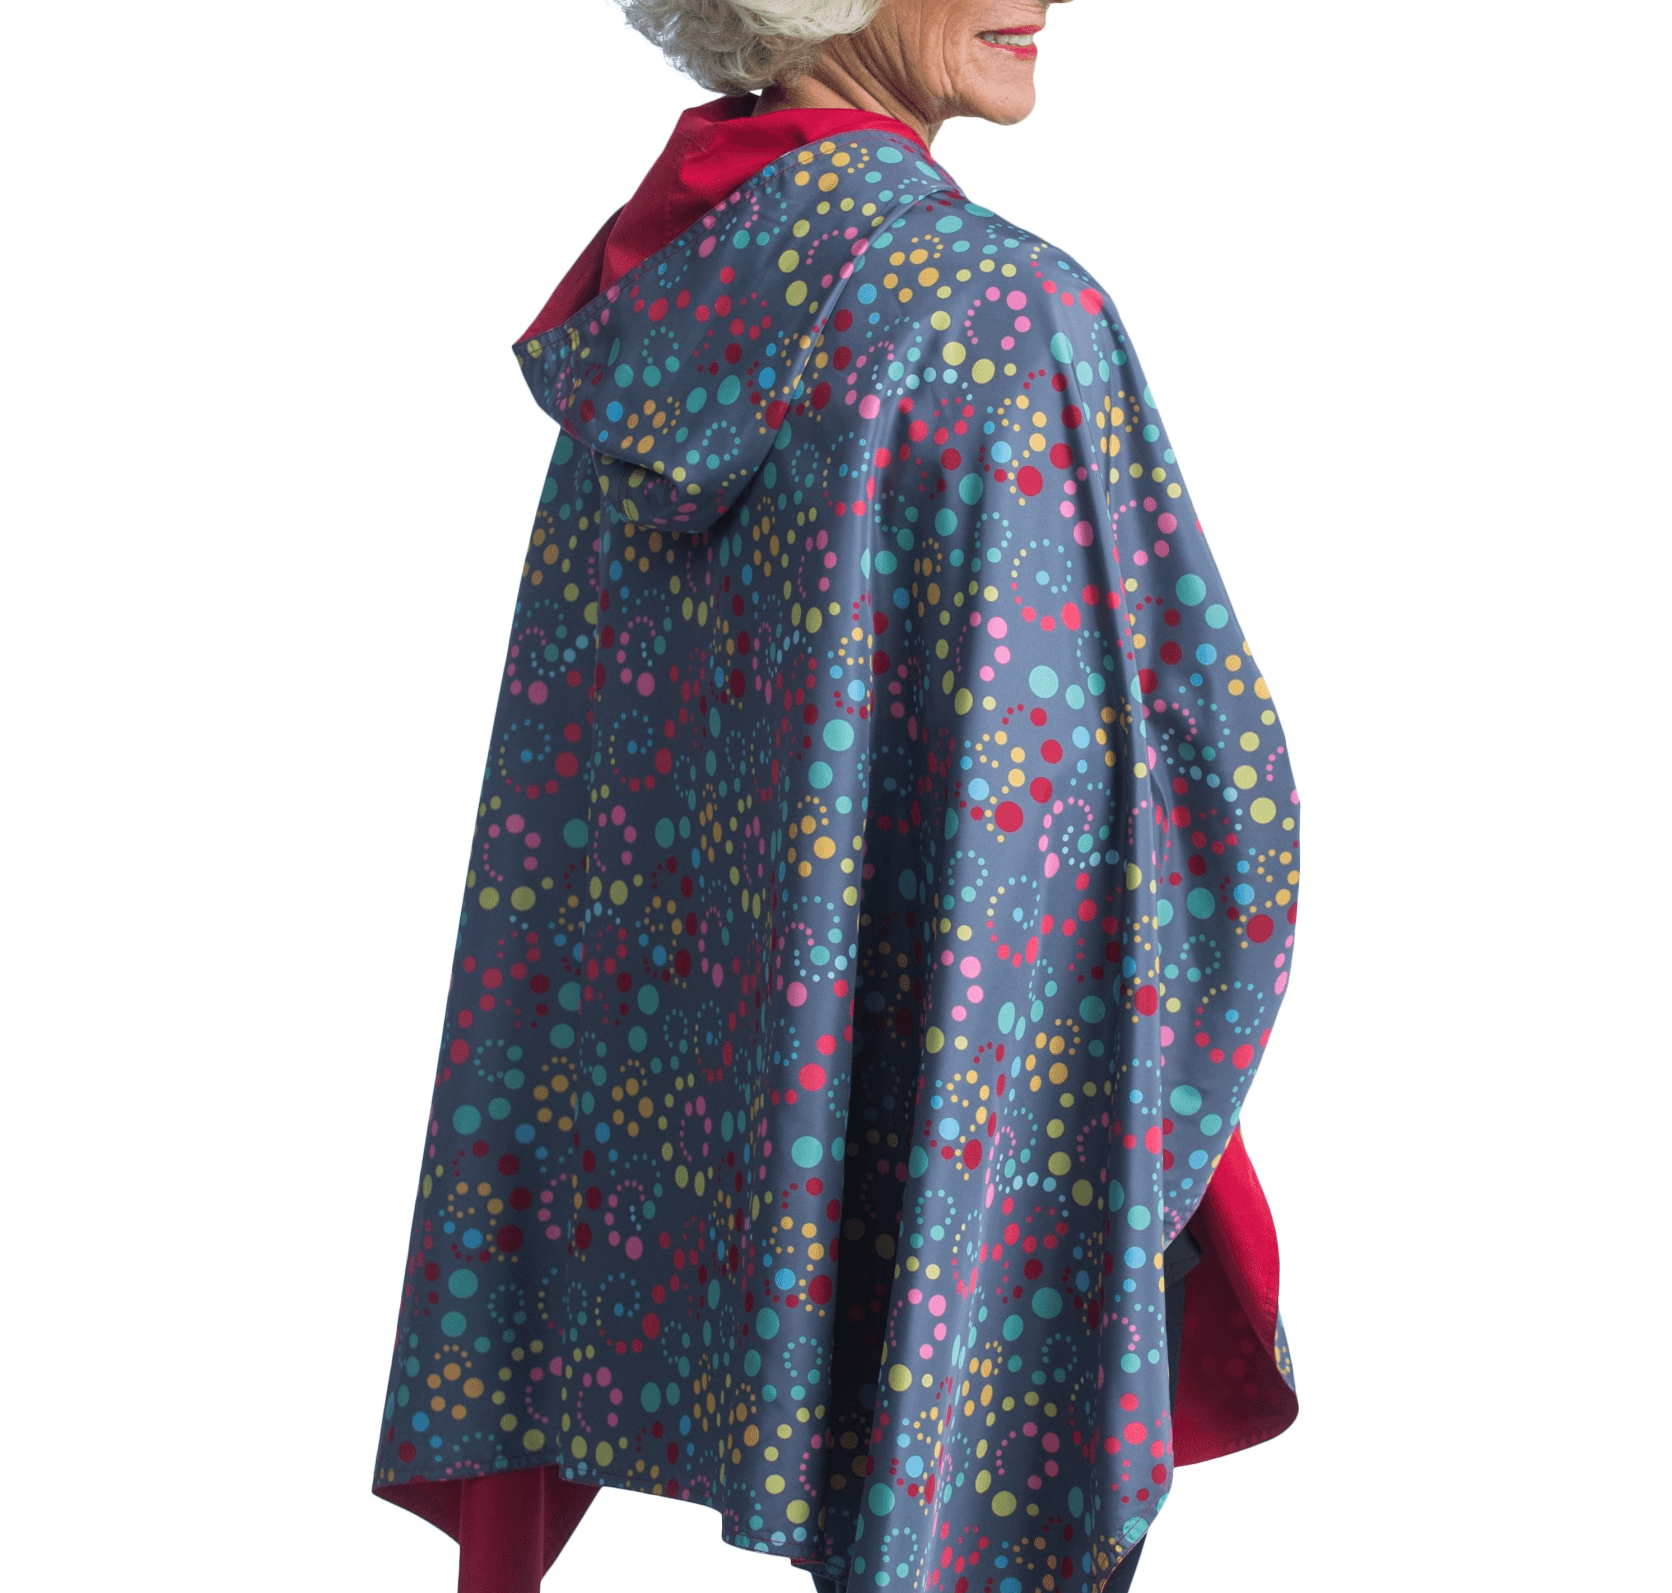 Women wearing a Berry and Swirl Dots RainCaper travel cape with the Swirl Dots side out, revealing the Berry side at the lapels, neckline and cuffs.